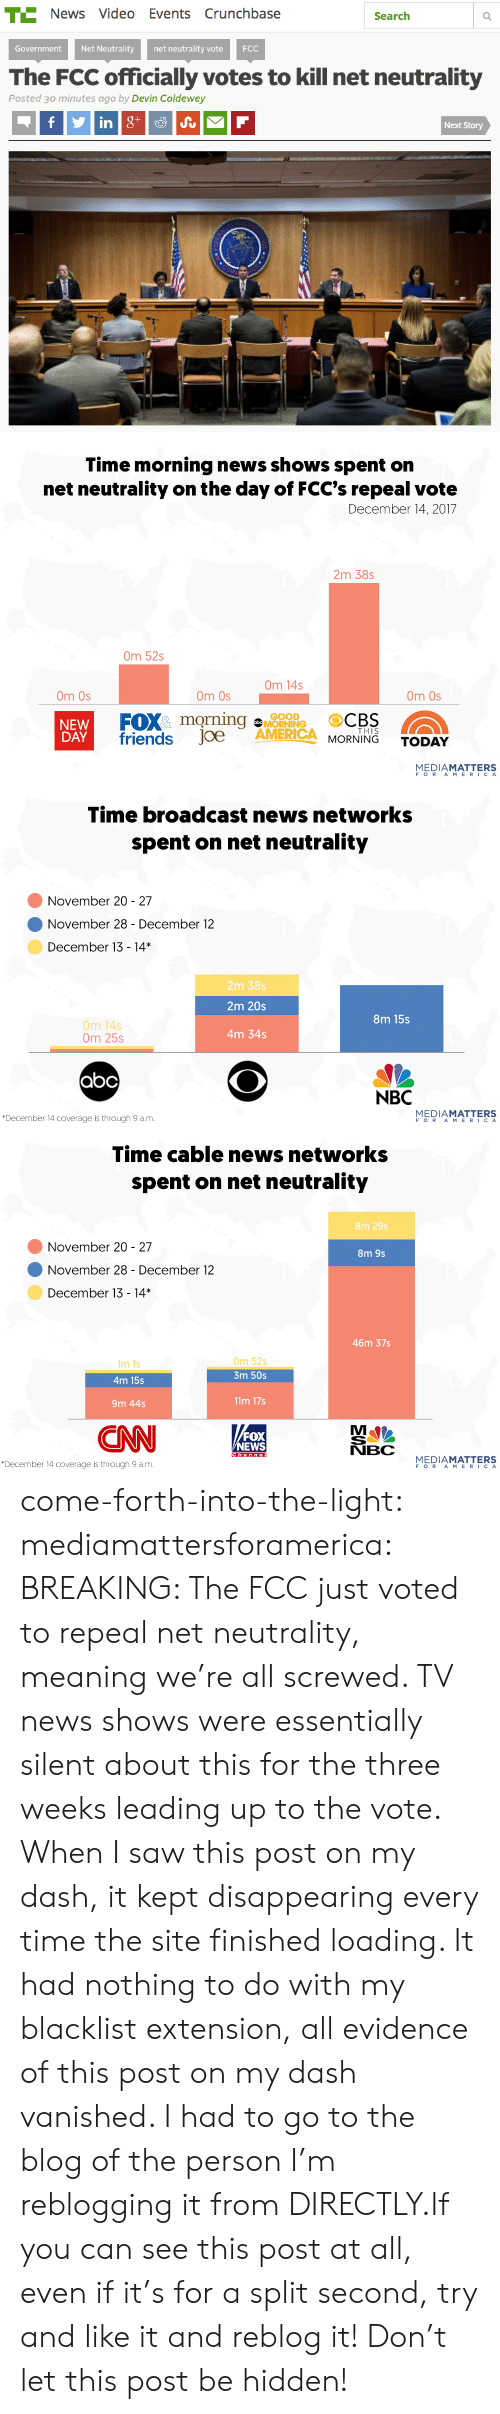 Abc, America, and Friends: T News Video Events Crunchbase  Search  Government Net Neutrality net neutrality vote FCC  The FCC officially votes to kill net neutrality  Posted 3o minutes ago by Devin Coldewey  Next Story   Time morning news shows spent on  net neutrality on the day of FCC's repeal vote  December 14, 2017  2m 38s  Om 52s  Om 14s  Om Os  Om Os  Om Os  FOXmorning  friends Joe  ARO  GOOD  NEW  DAY  AMERICA MORNING TODAY  THIS  MEDIAMATTERS   Time broadcast news networks  spent on net neutrality  November 20- 27  November 28 - December 12  December 13-14*  2m 38s  2m 20s  4m 34s  8m 15s  0m 14s  0m 25s  abc  NBC  December 14 coverage is through 9 a.m.  MEDIAMATTERS  FOR AMER'СА   Time cable news networks  spent on net neutrality  8m 29s  November 20- 27  8m 9s  November8  28 - December 12  December 13-14*  46m 37s  m 1s  4m 15s  0m 52s  3m 50s  9m 44s  11m 17s  FOX  NEWS  NBC  December 14 coverage is through 9 a.m.  MEDIAMATTERS  FORAMERIC A come-forth-into-the-light: mediamattersforamerica: BREAKING: The FCC just voted to repeal net neutrality, meaning we're all screwed. TV news shows were essentially silent about this for the three weeks leading up to the vote. When I saw this post on my dash, it kept disappearing every time the site finished loading. It had nothing to do with my blacklist extension, all evidence of this post on my dash vanished. I had to go to the blog of the person I'm reblogging it from DIRECTLY.If you can see this post at all, even if it's for a split second, try and like it and reblog it! Don't let this post be hidden!